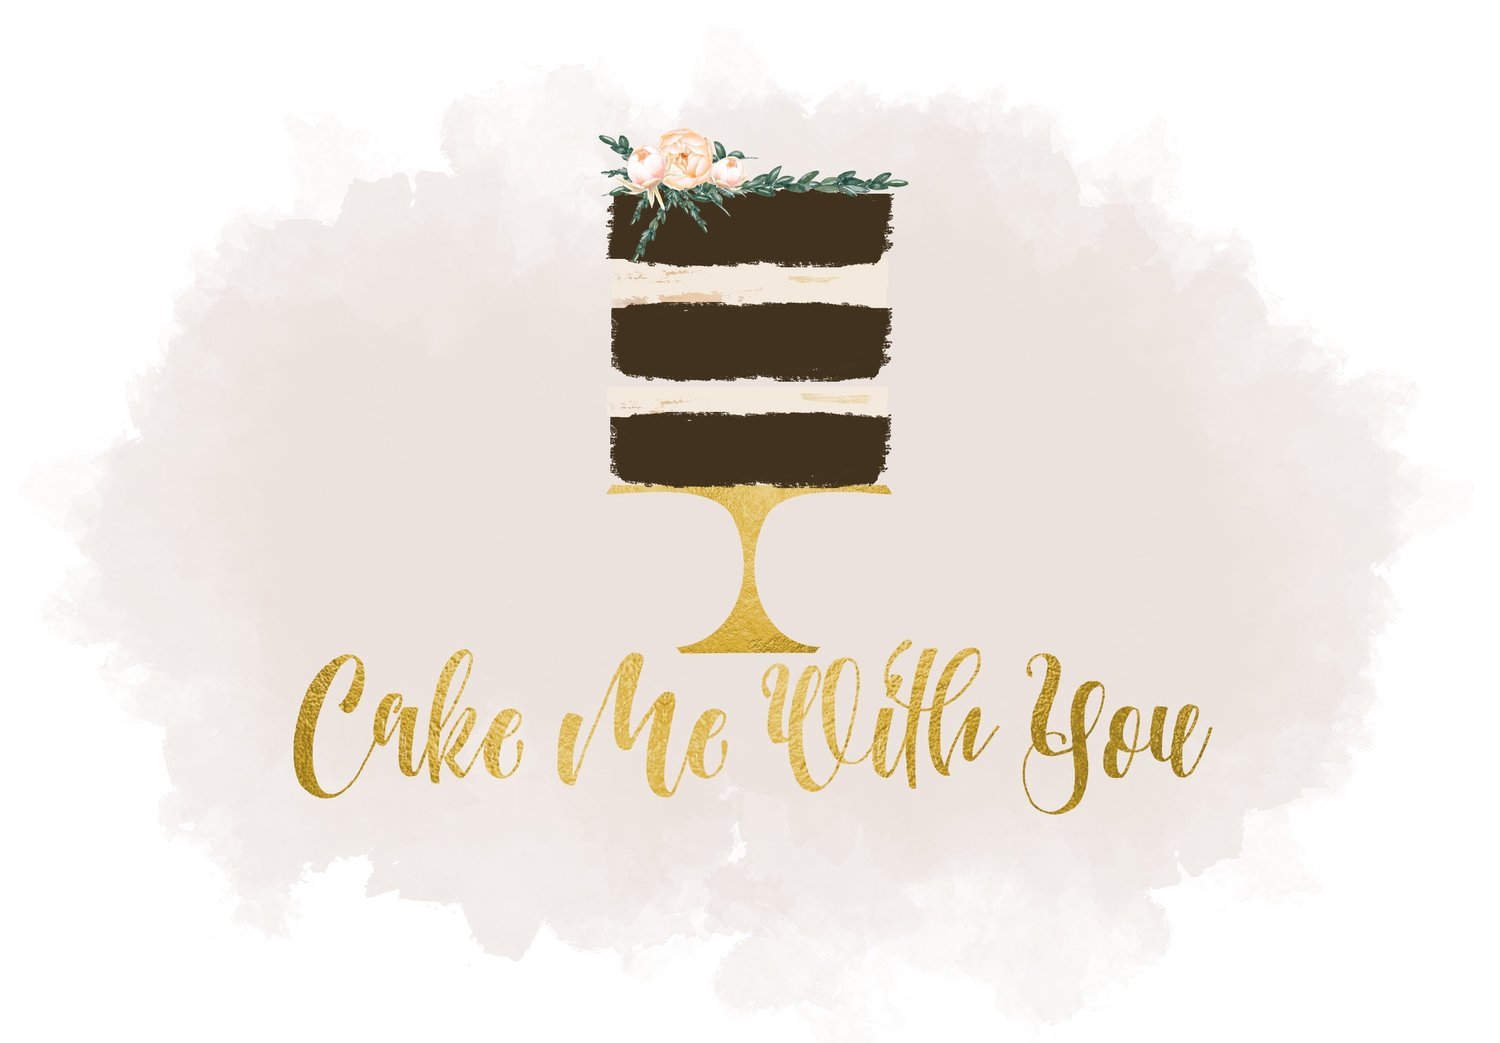 Cake Me With You